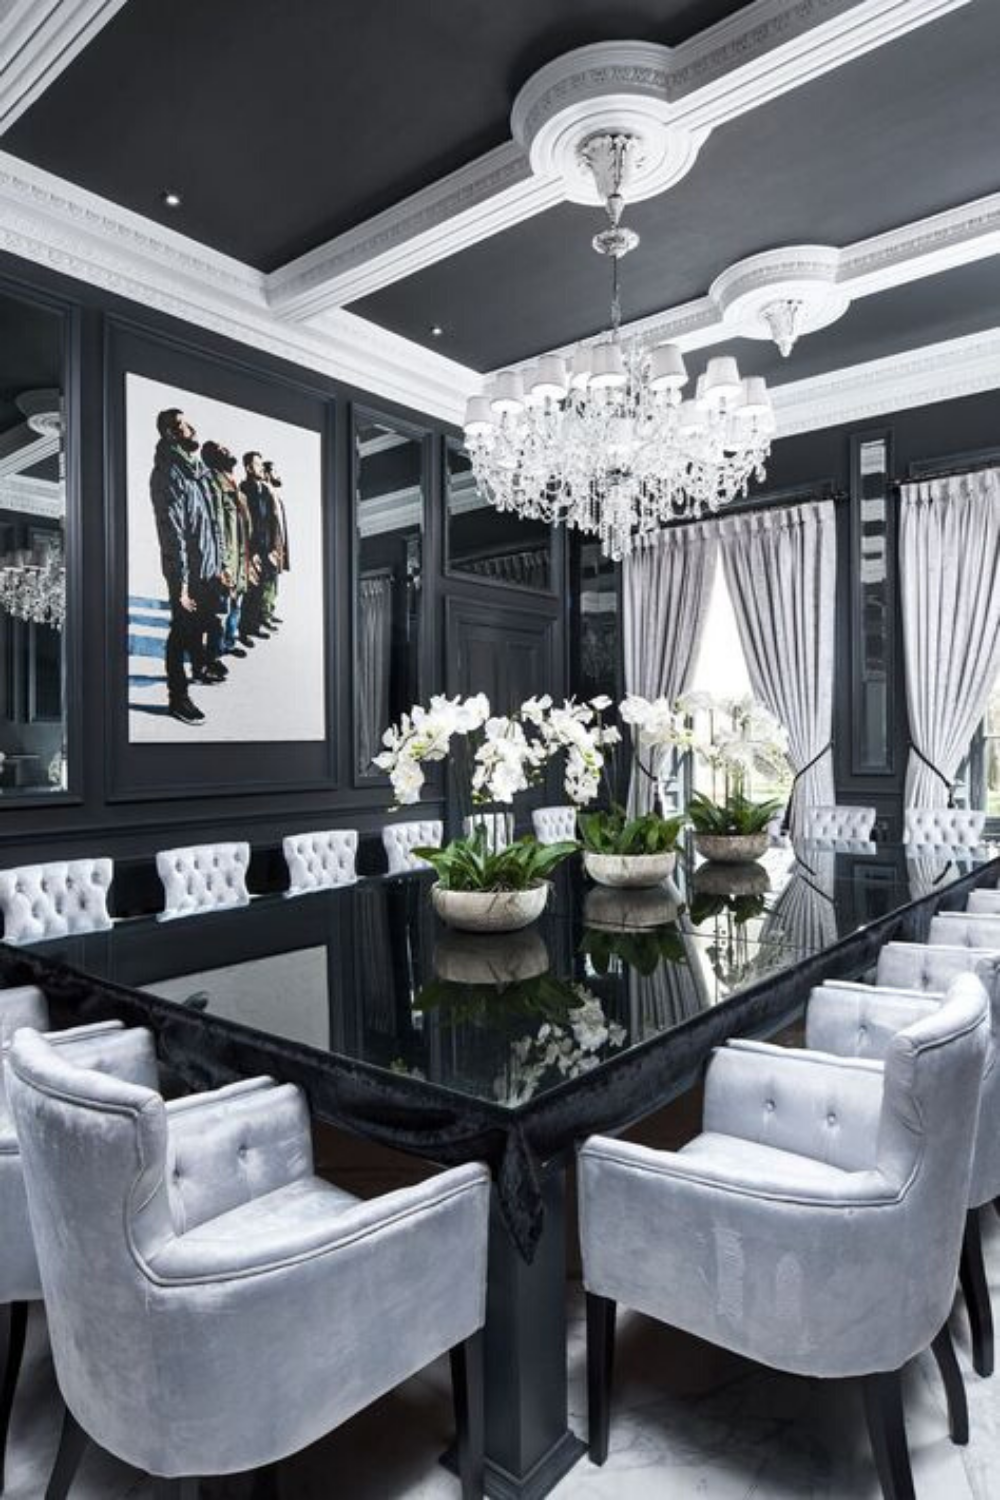 Dining Room Black And White Inspiration In 2020 Luxury Dining Room Decor Dining Room Table Decor Black Dining Room